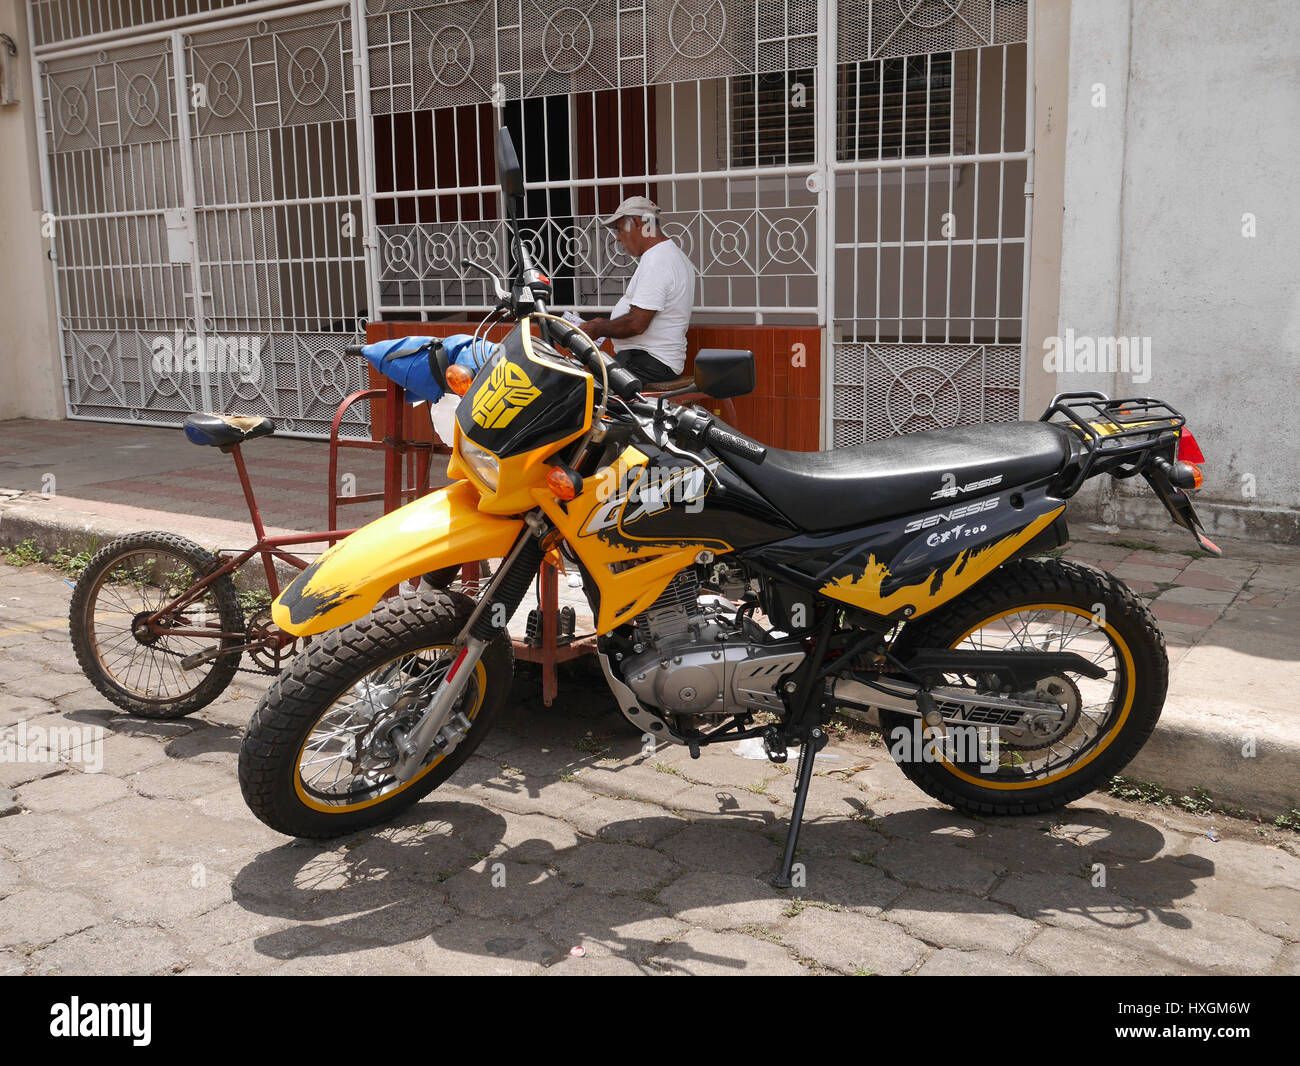 Motorcycle in Nicaragua streets - Stock Image